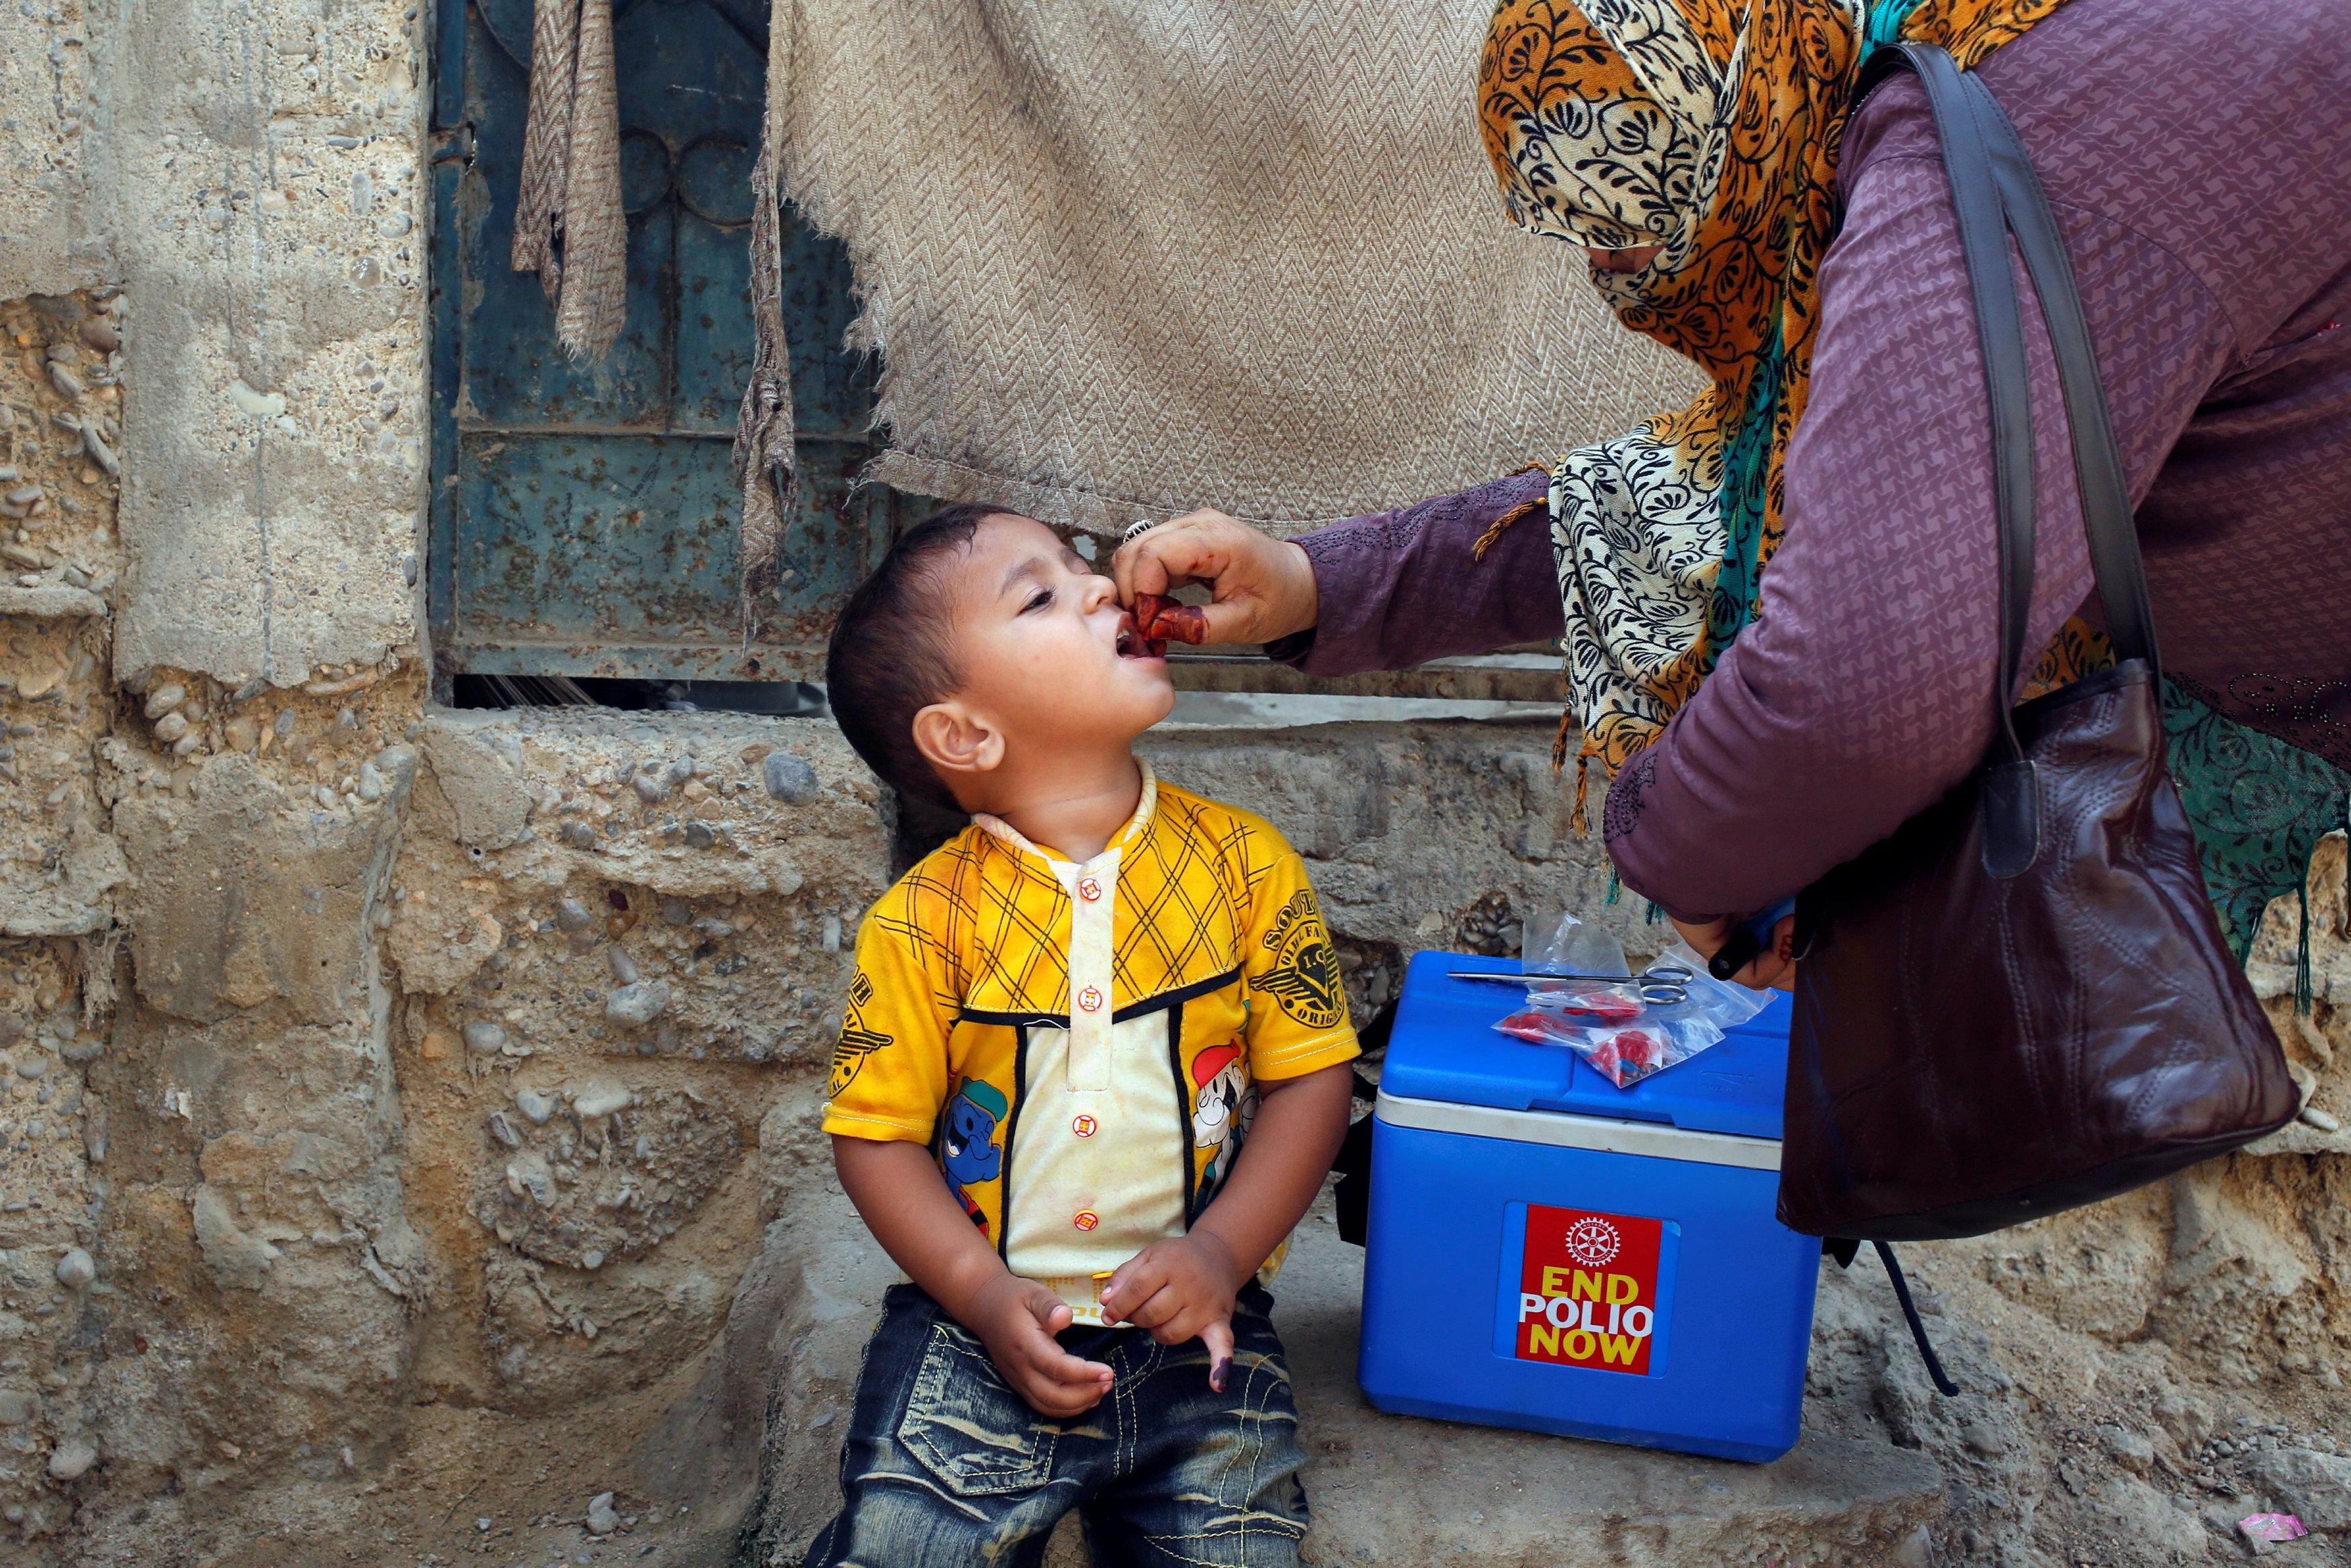 Anti-polio vaccine teams on edge after fatal attacks. PHOTO: REUTERS